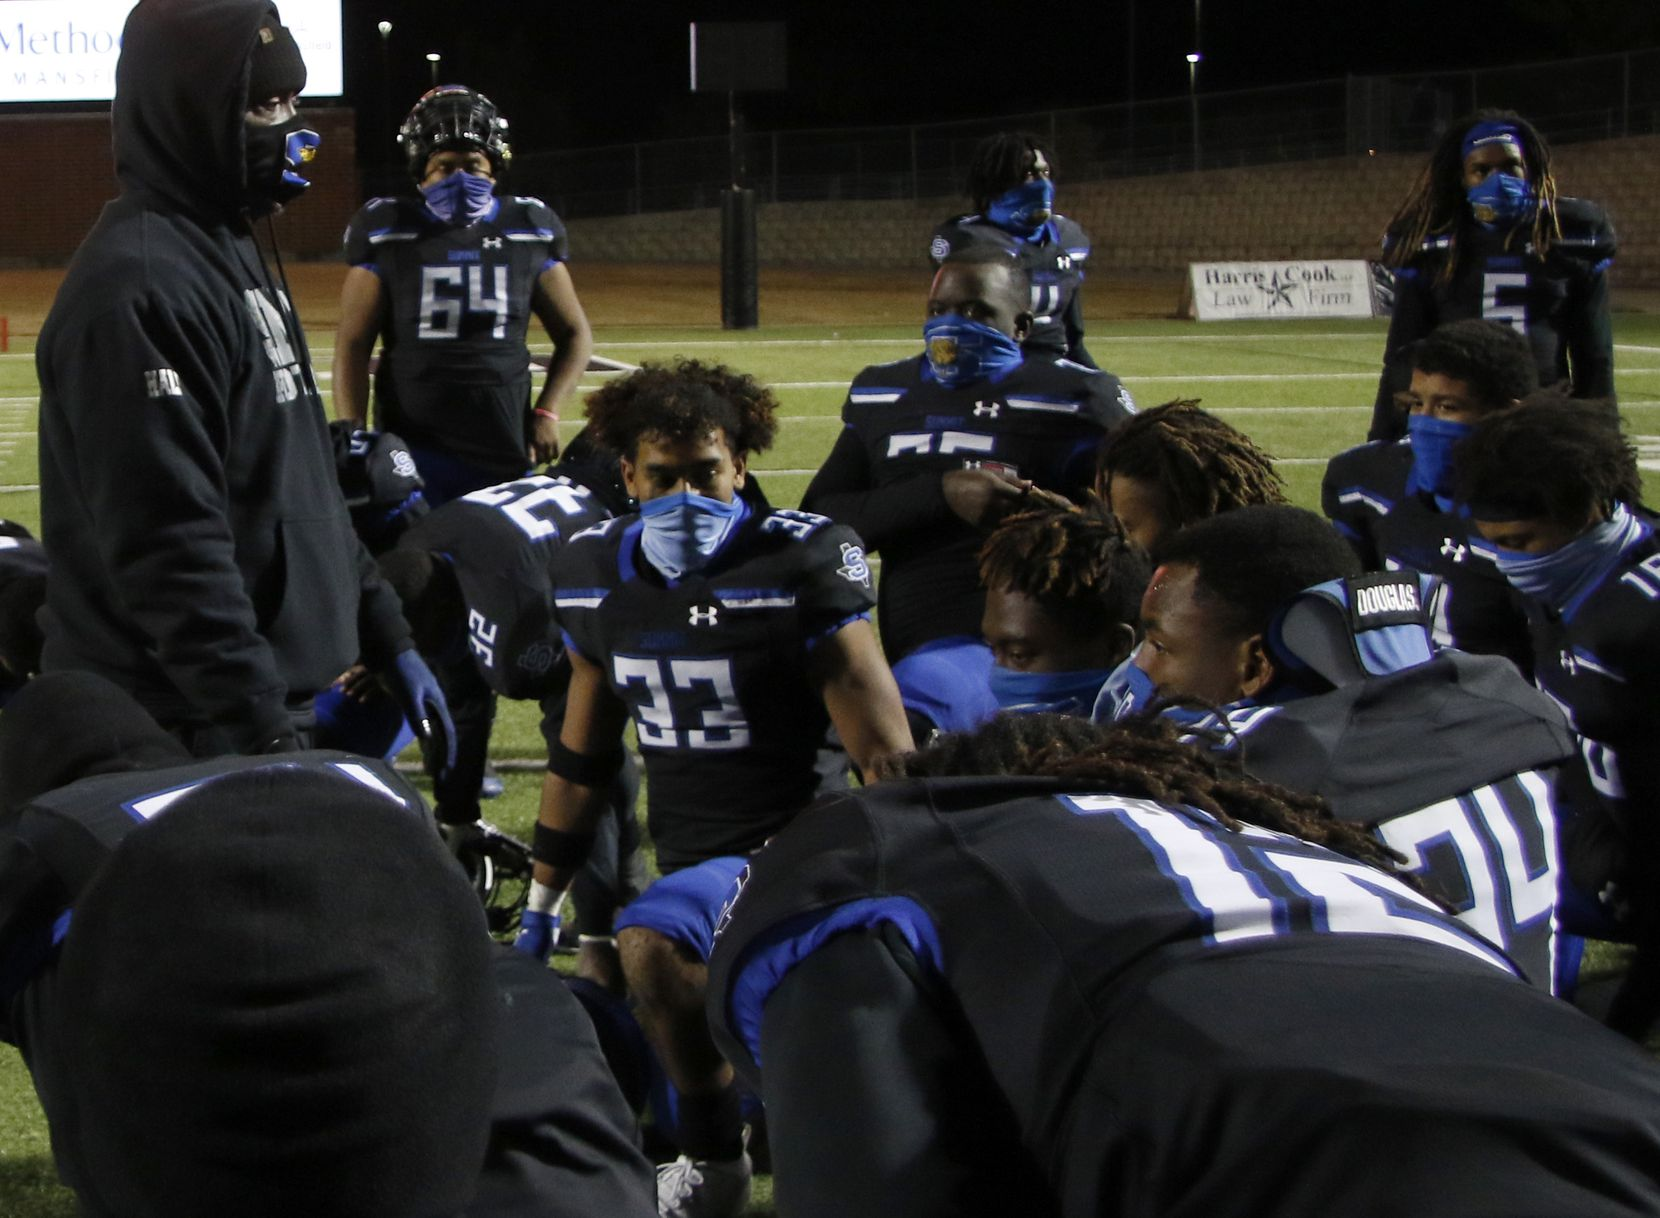 Mansfield Summit head coach Channon Hall speaks with his team following their 38-24 victory over Birdville to earn a playoff berth. The two teams played their District 4-5A Division l football game at Vernon Newsom Stadium in Mansfield on December 3, 2020.